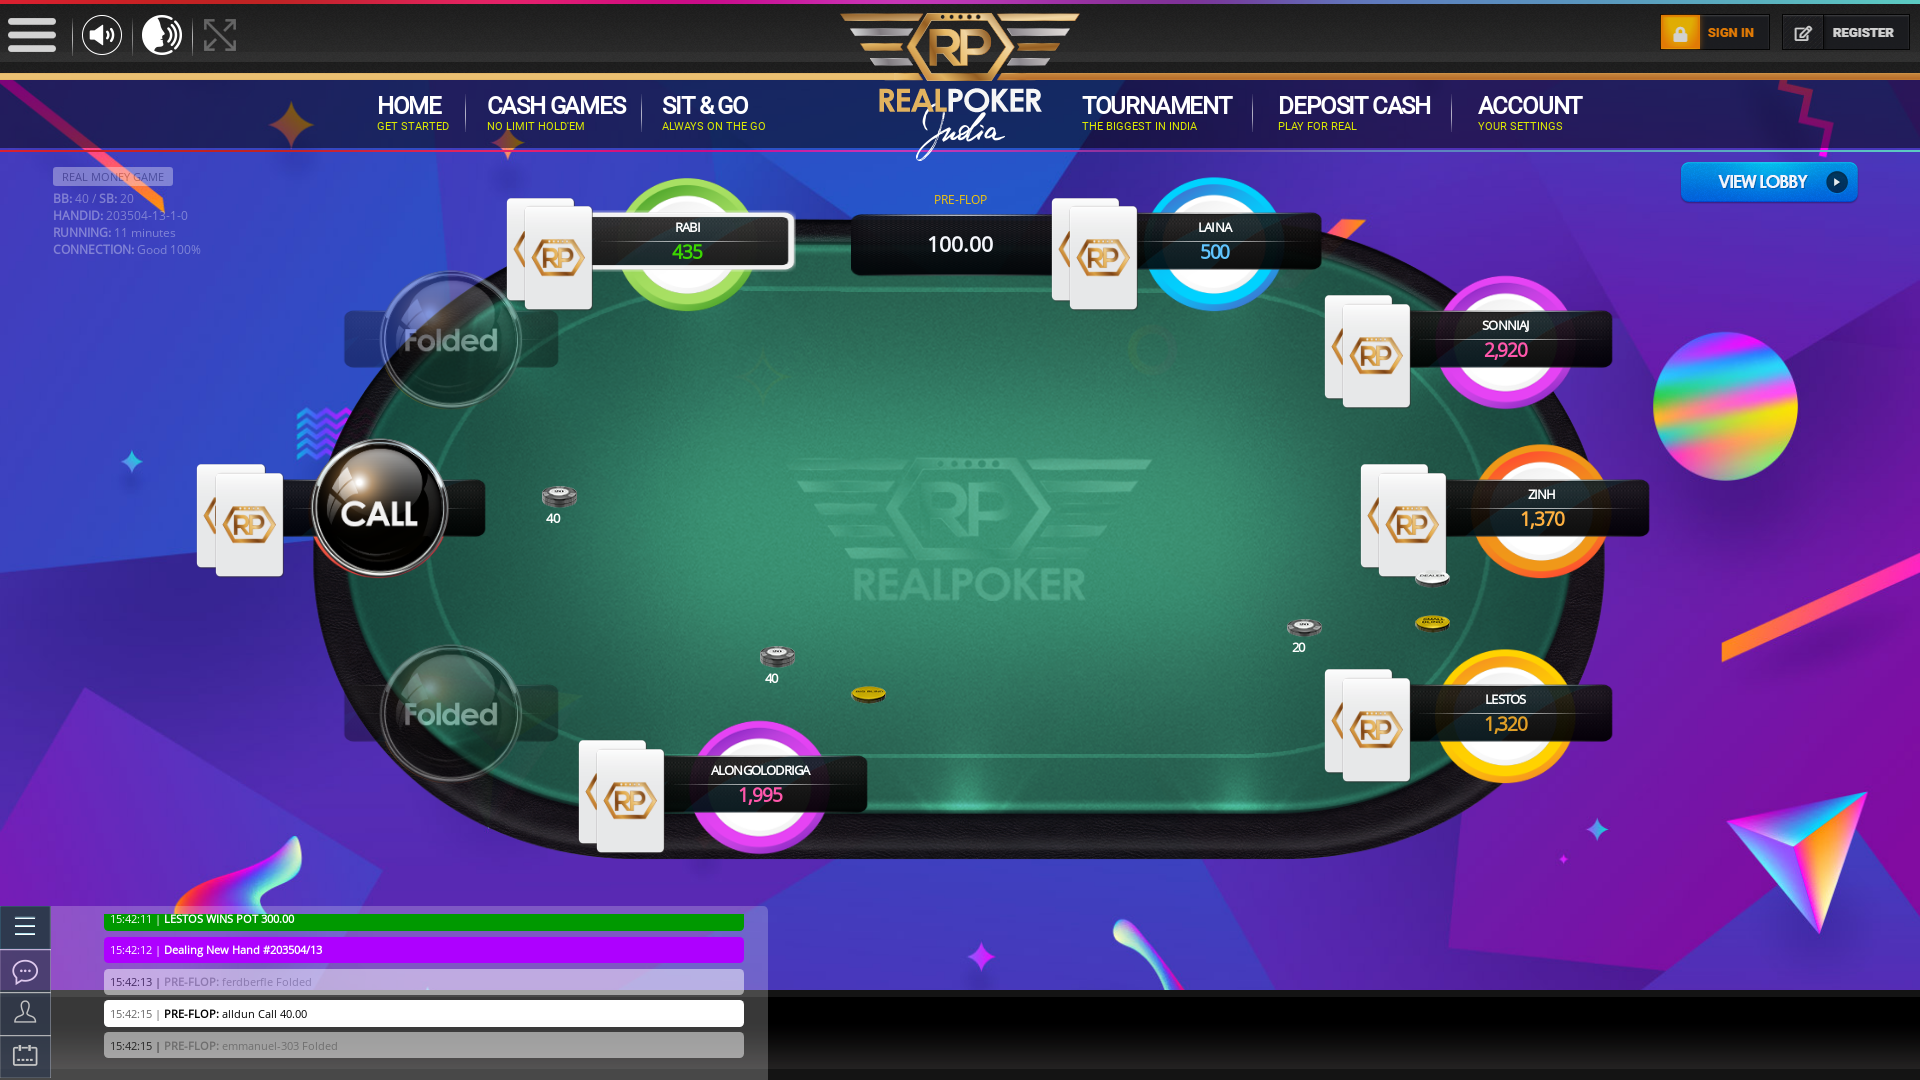 10 player poker in the 11th minute